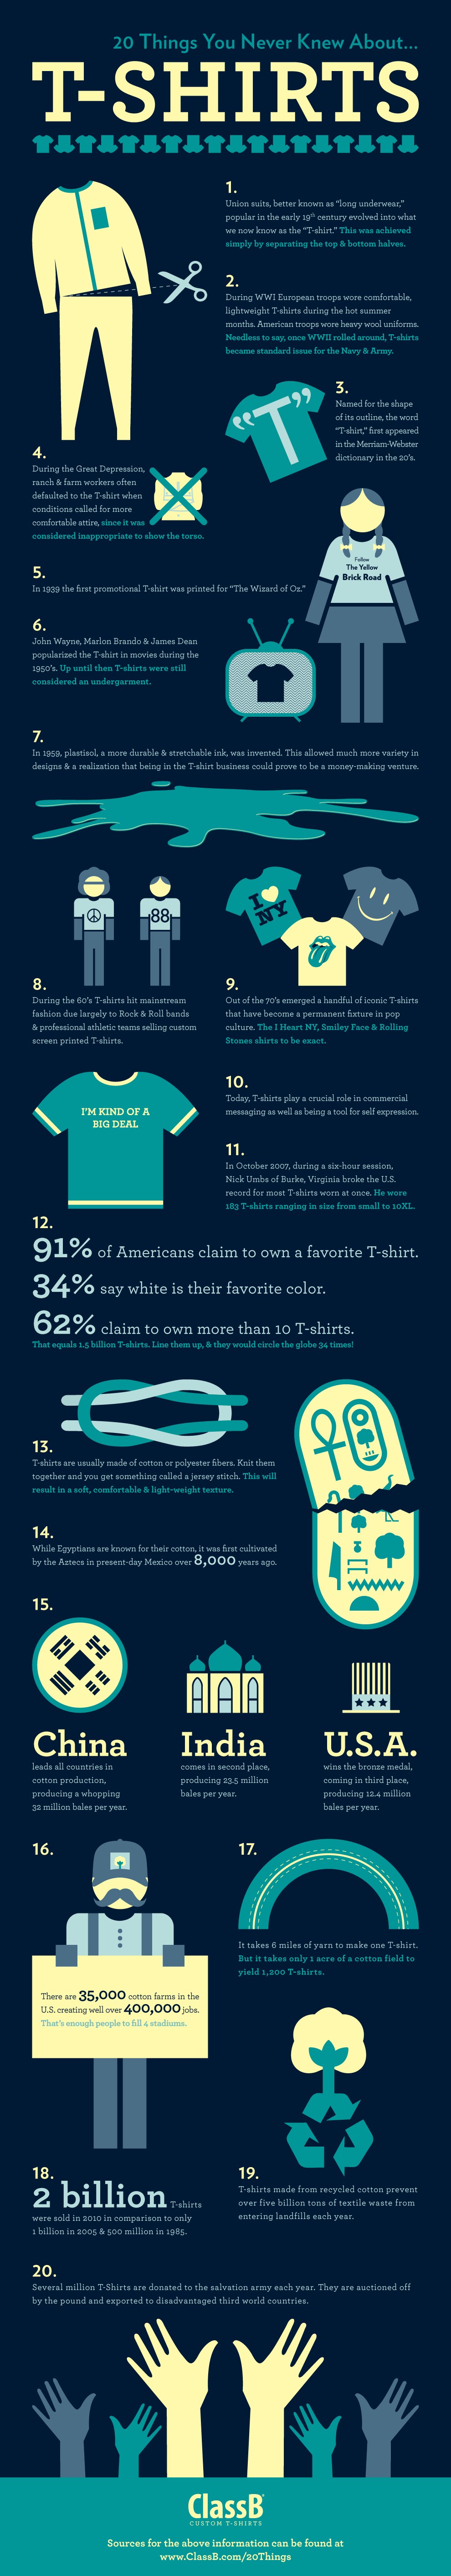 Infographic: 20 Things You Never Knew About T-shirts